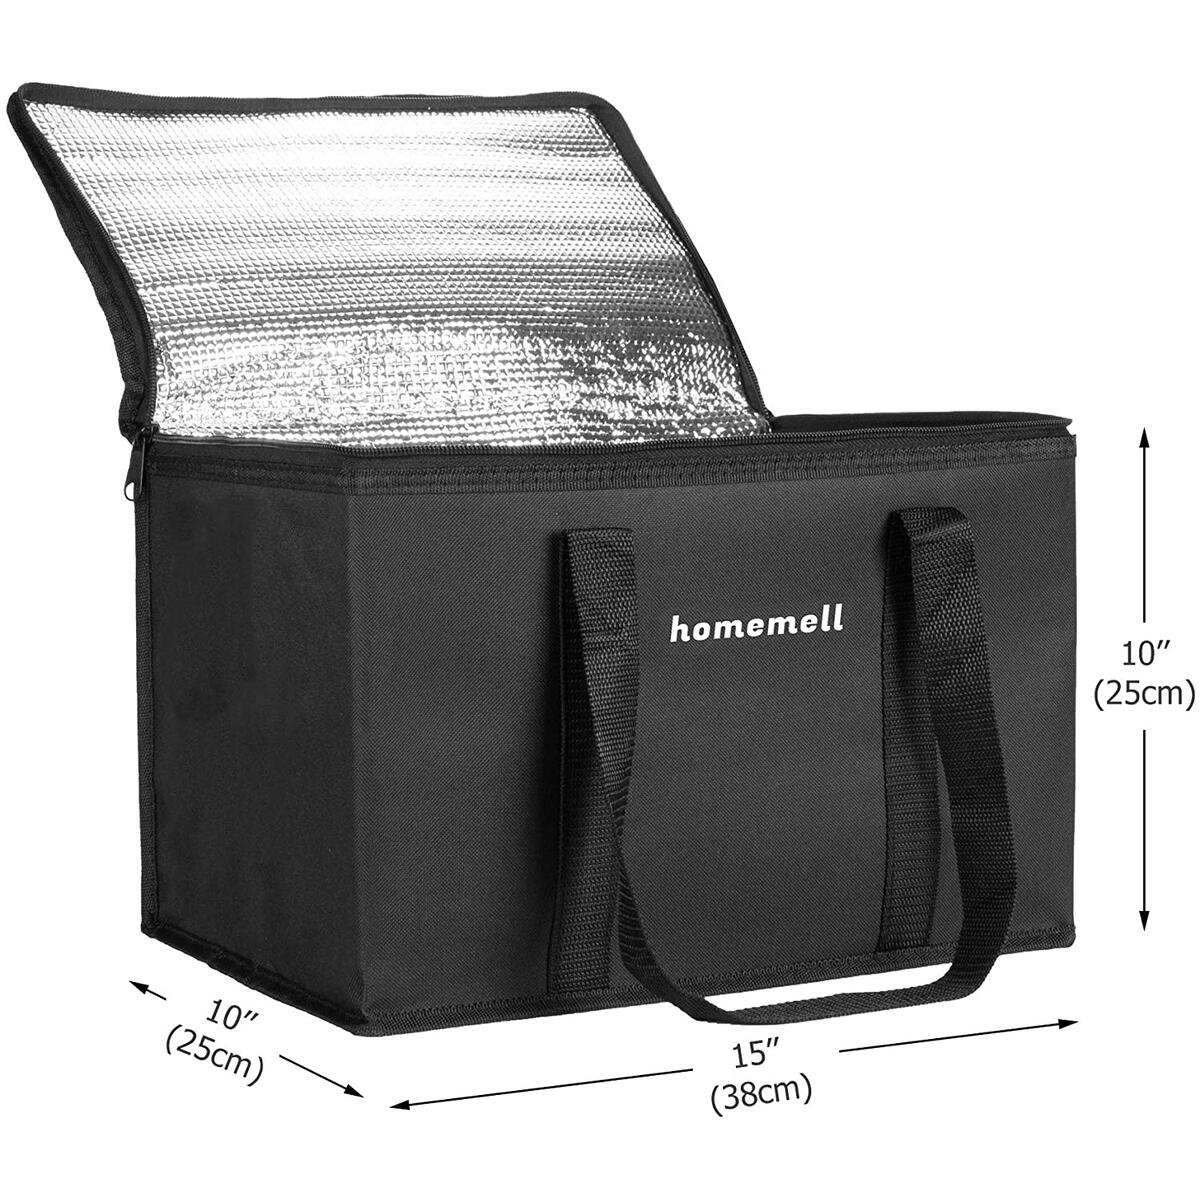 Homemell Cold bags for Groceries Frozen Food Soft Zippered Cooler Thermal Bags Upgraded Oxford Cloth Fabric Sturdy Zipper Stands Upright Collapsible Insulated Picnic Tote Transportation 2 Pack